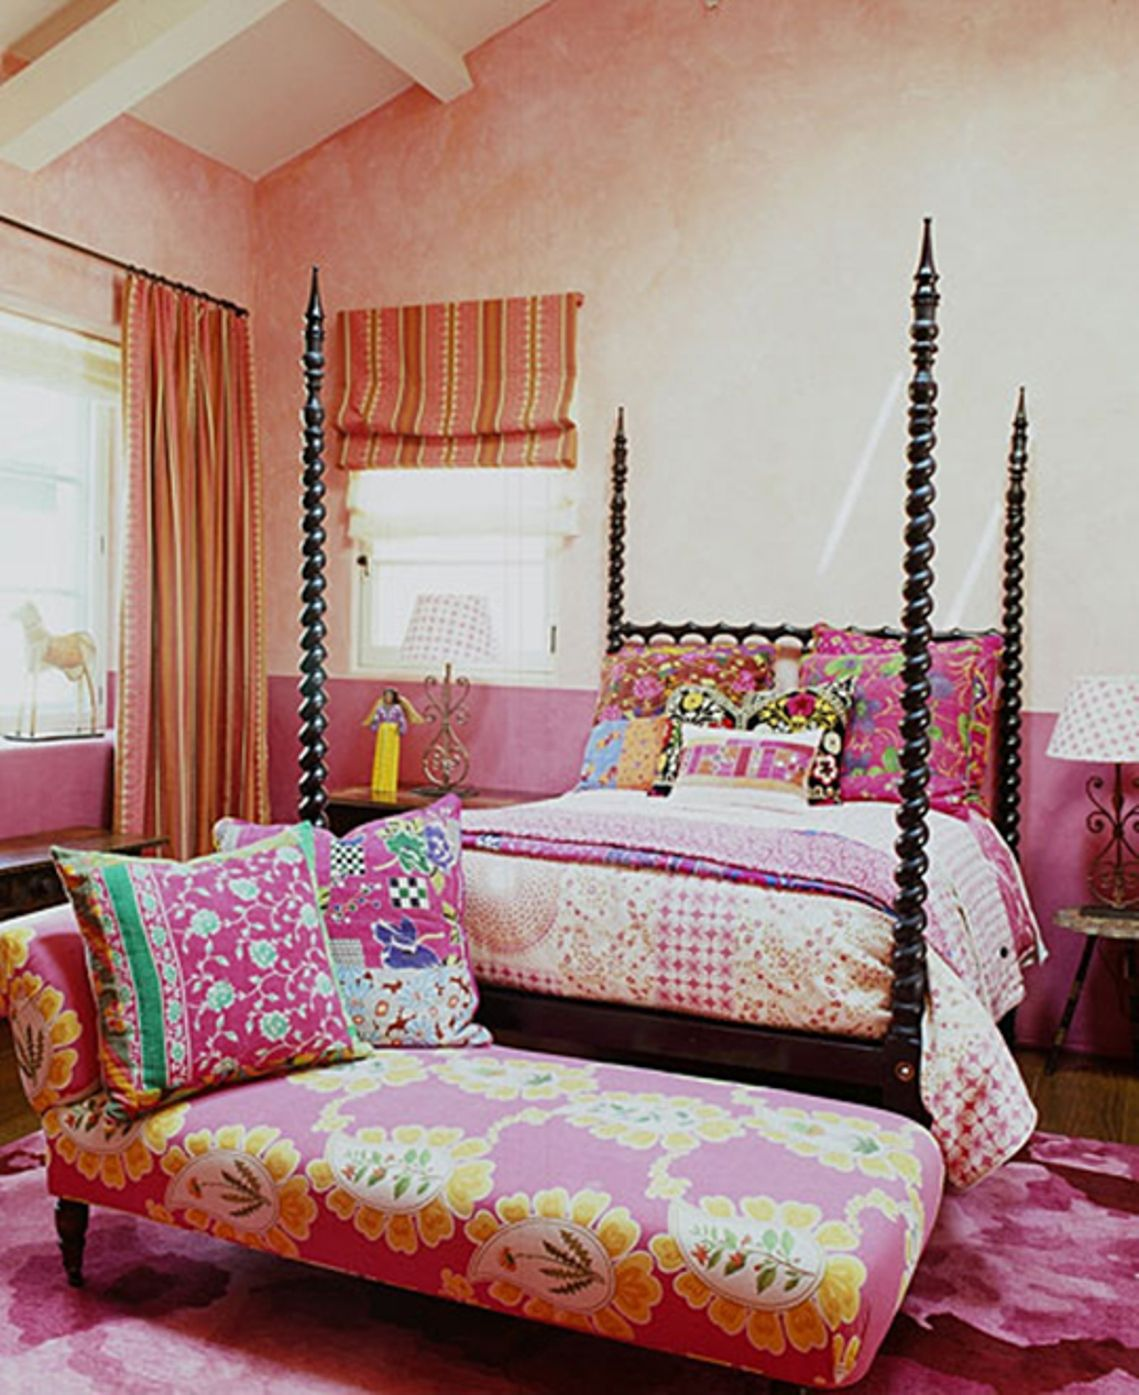 Bedroom Chic Boho Ideas With Shades Of Pink Color